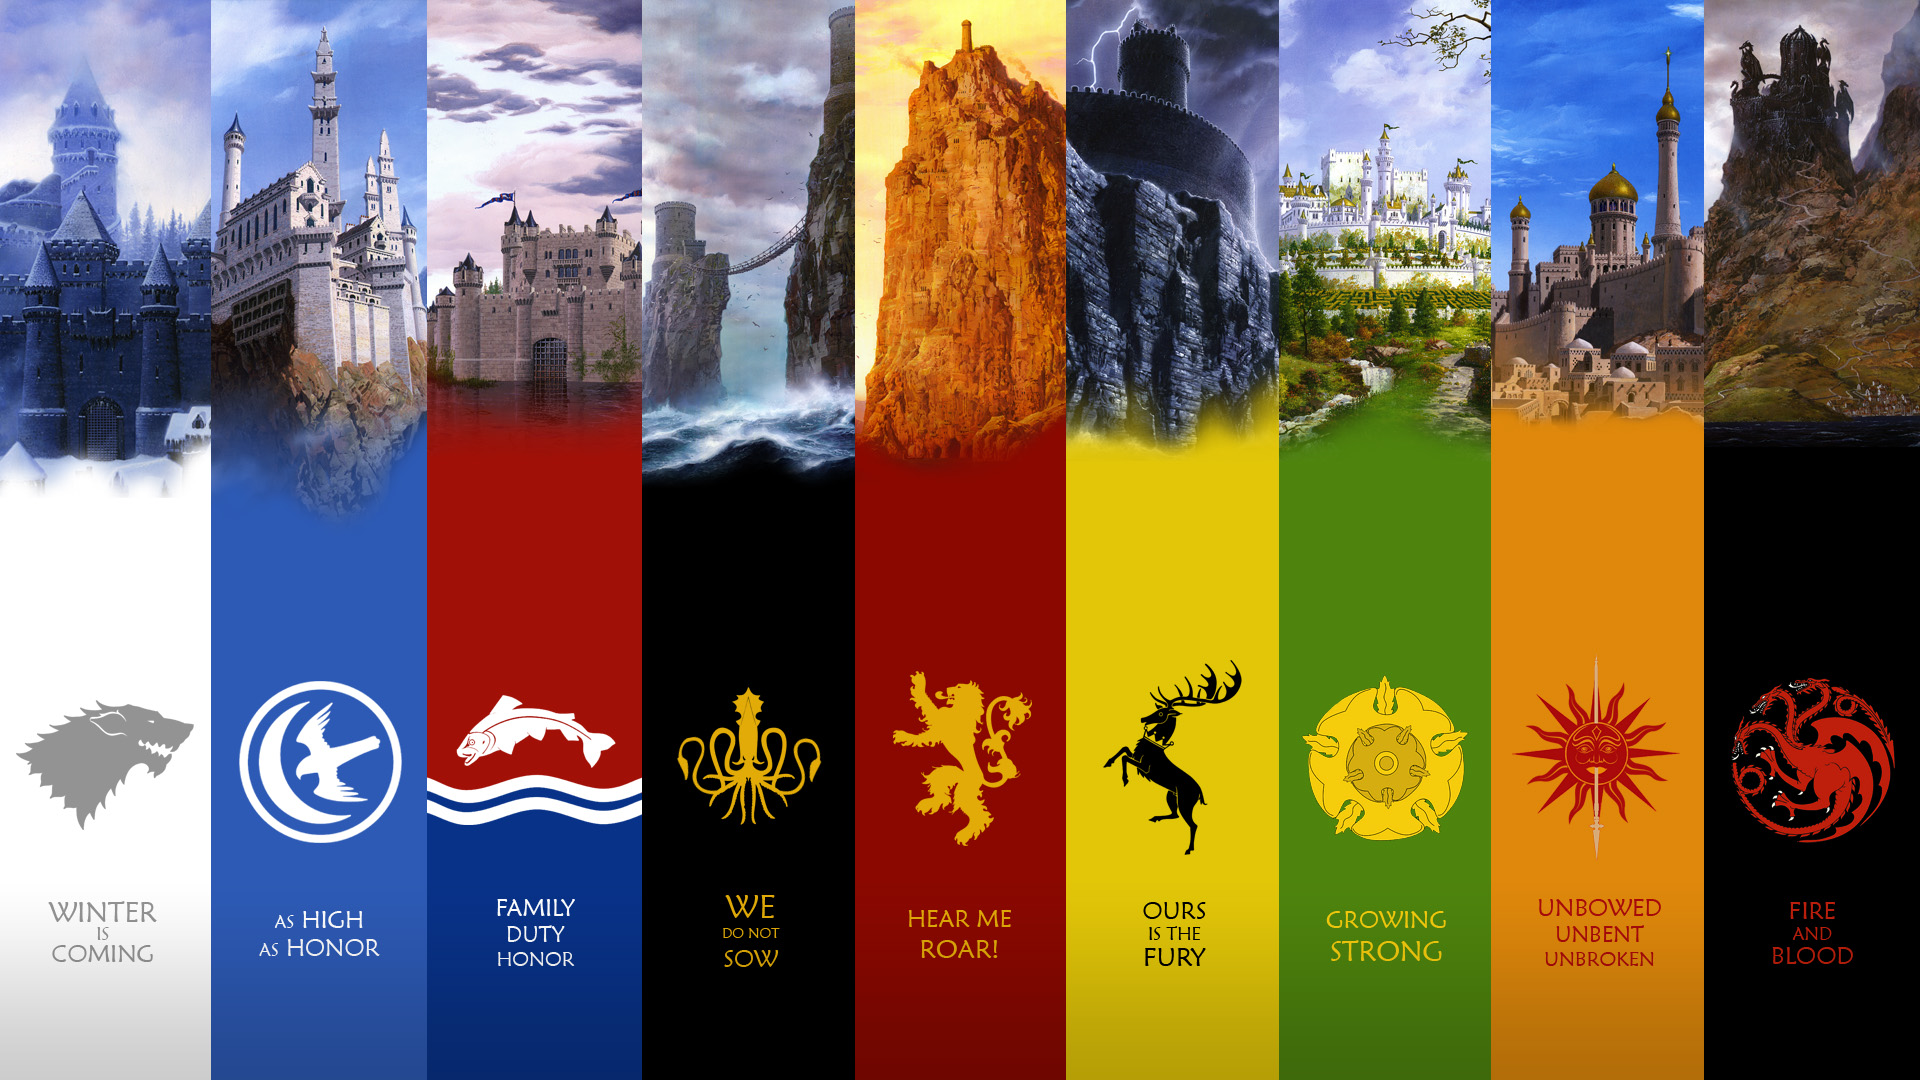 a song of ice and fire - photo #15